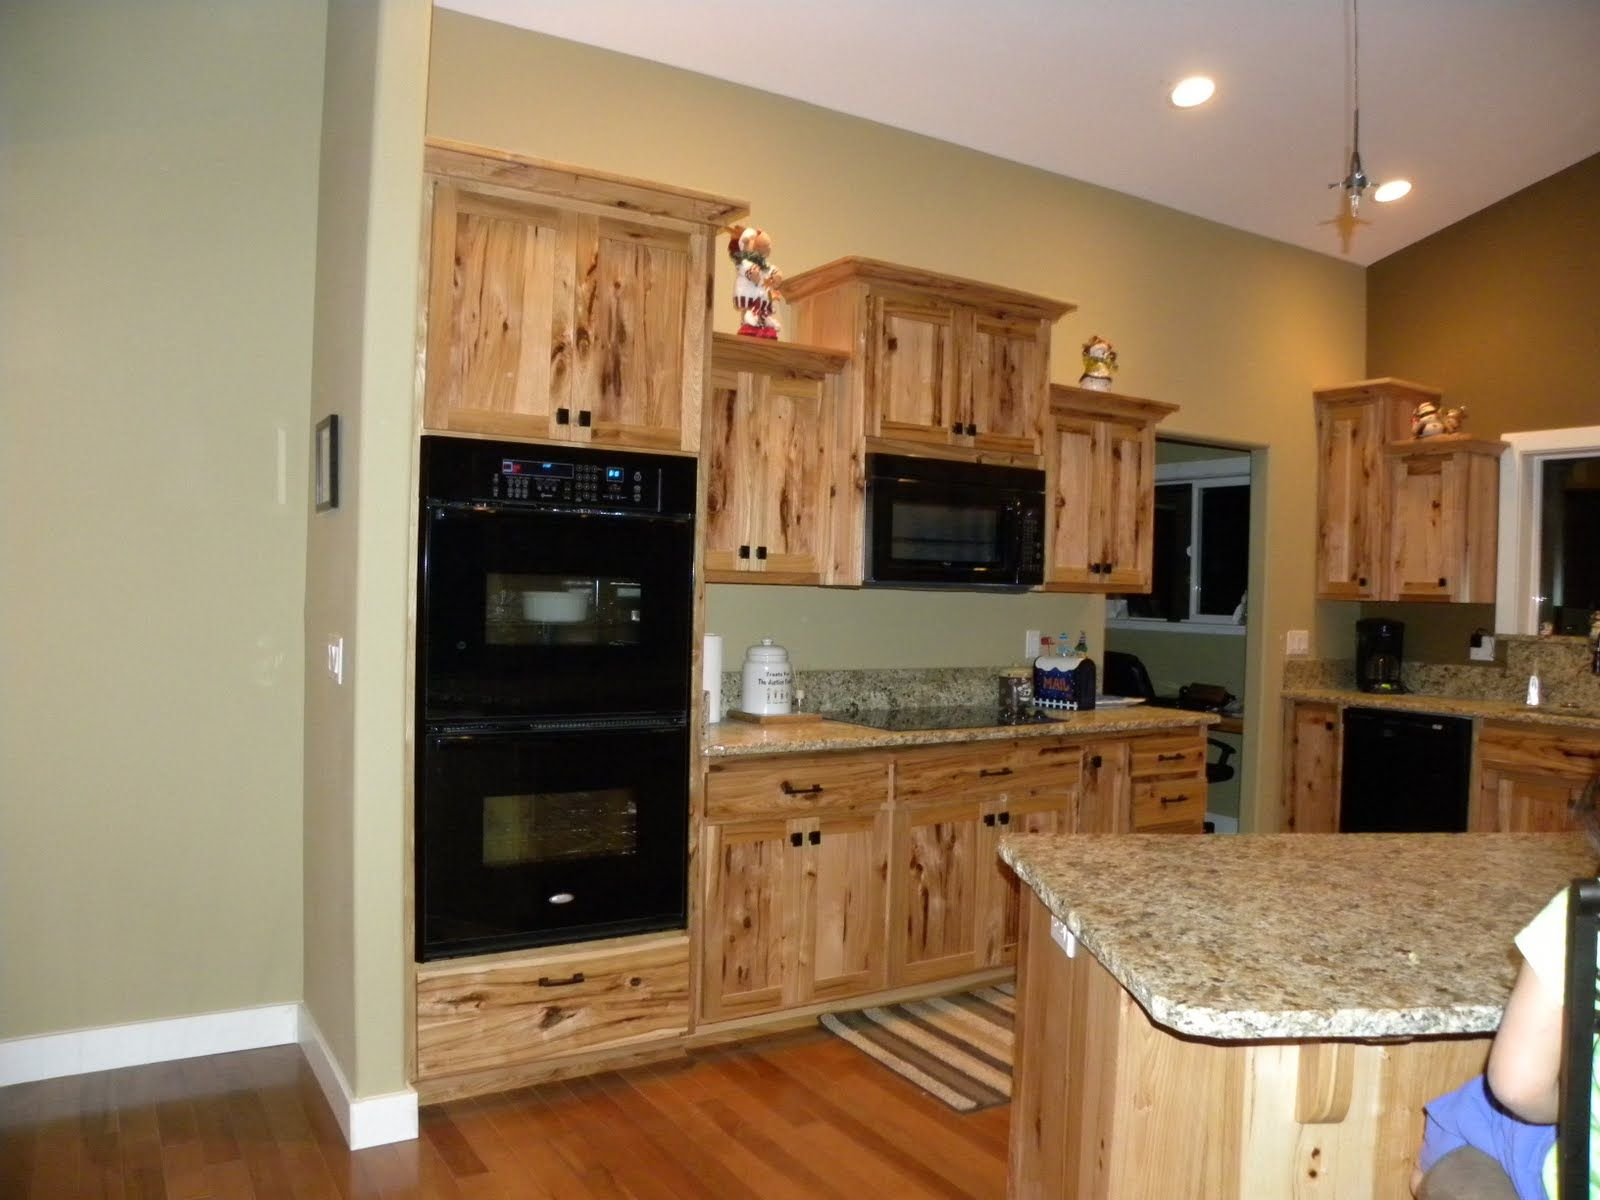 Scott River Custom Cabinets: Rustic Hickory Cabinets-Shaker Style ...